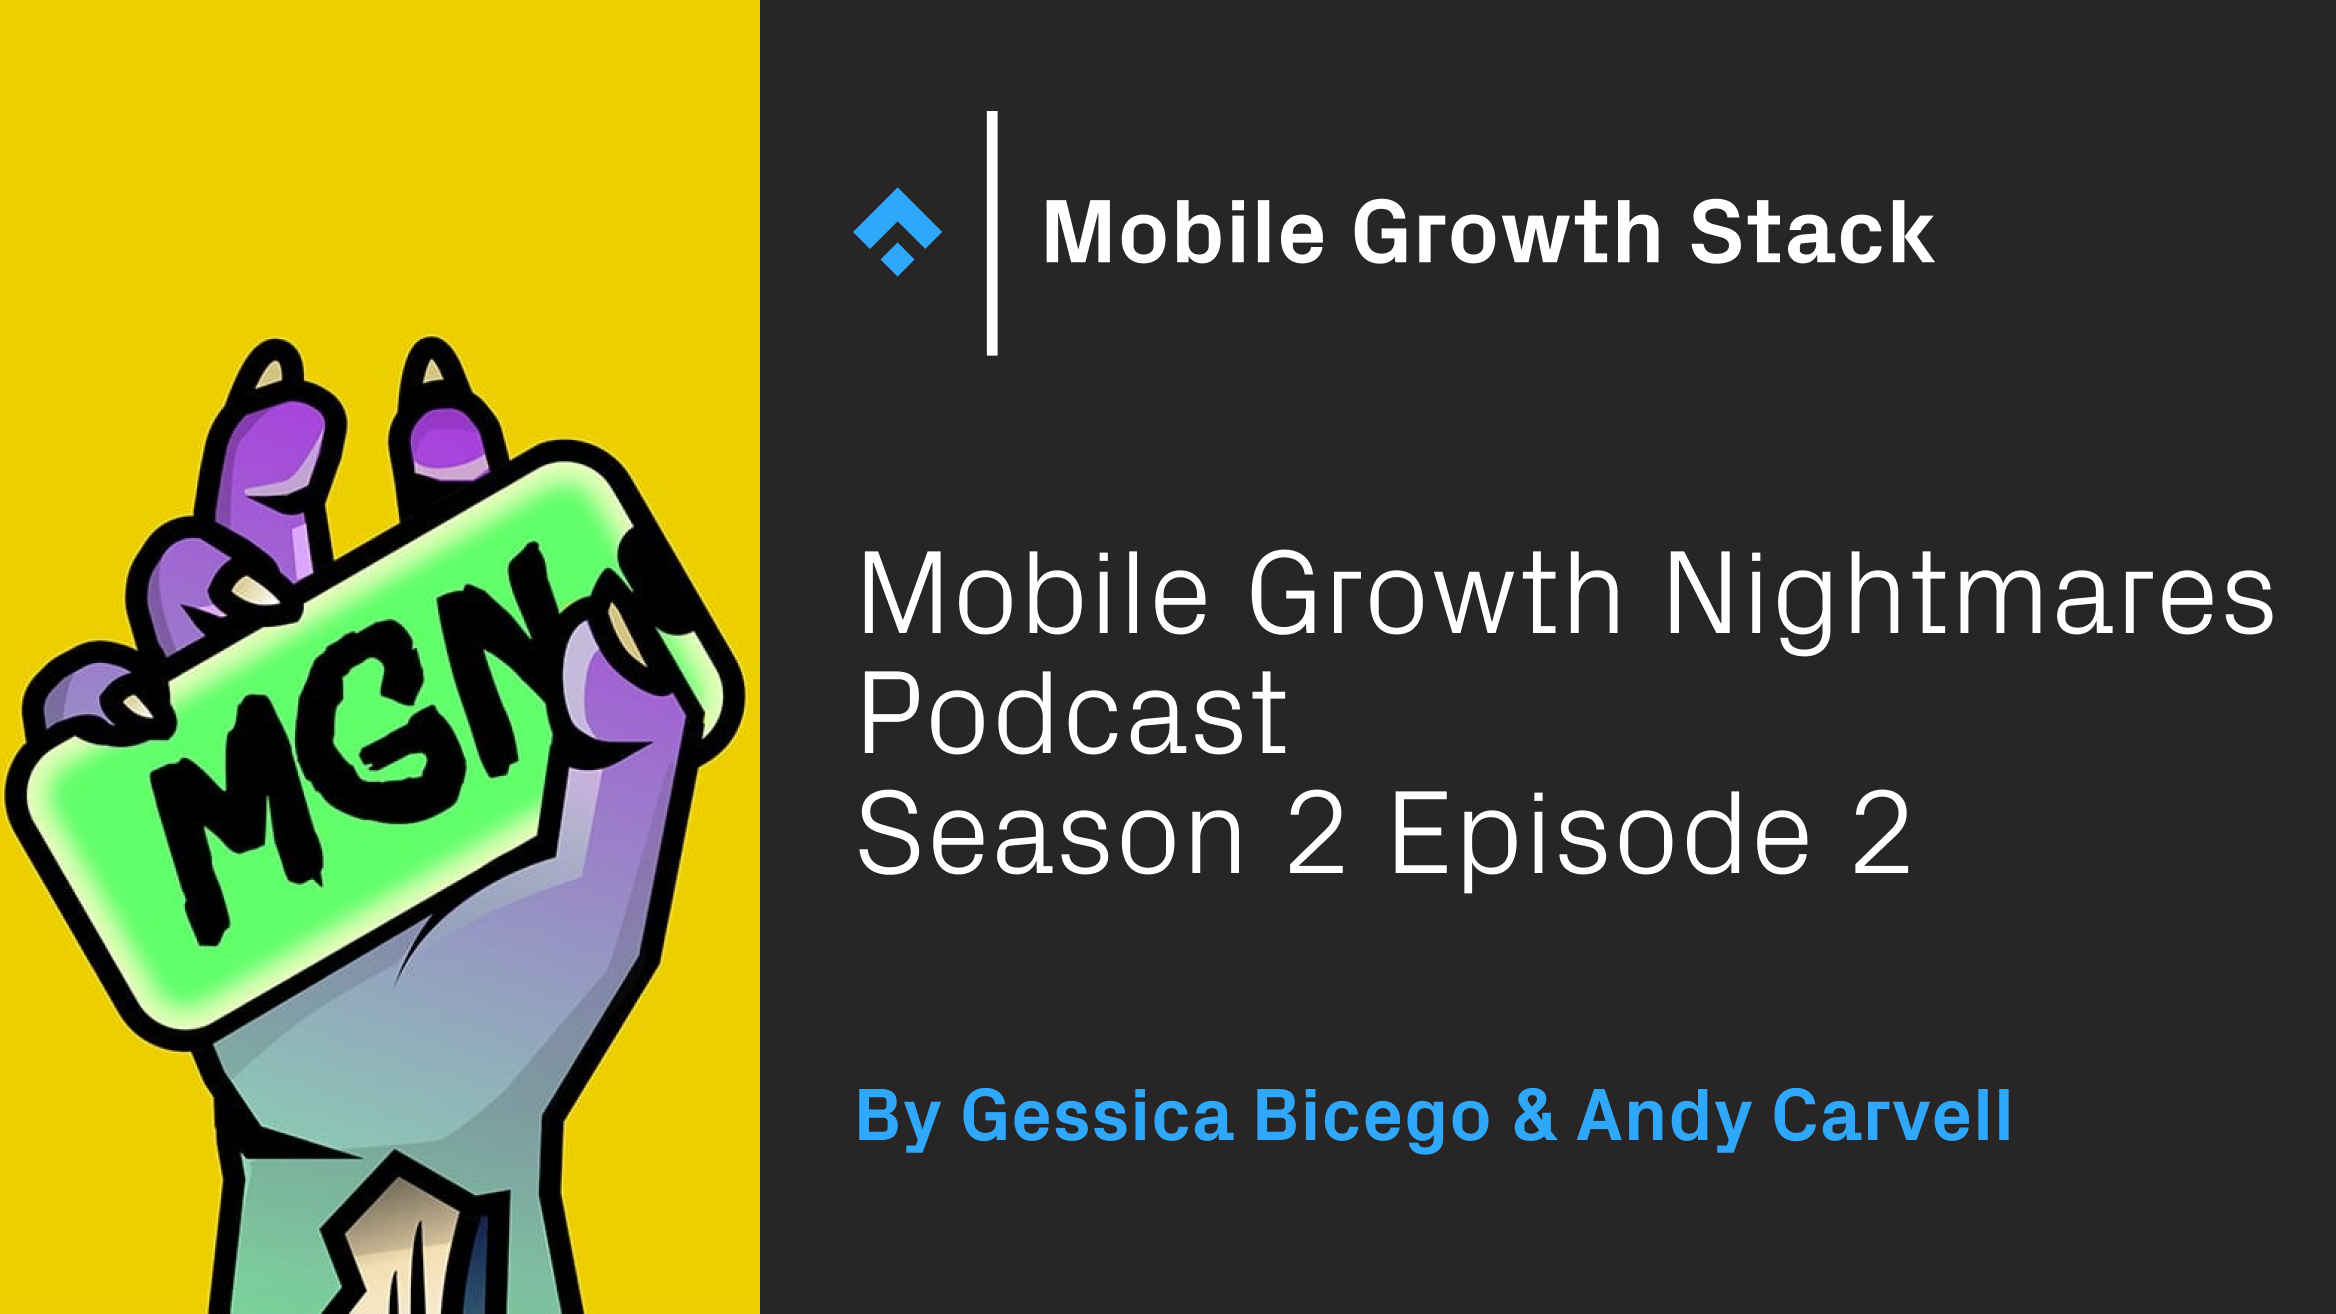 Mobile Growth Nightmares S2 E2